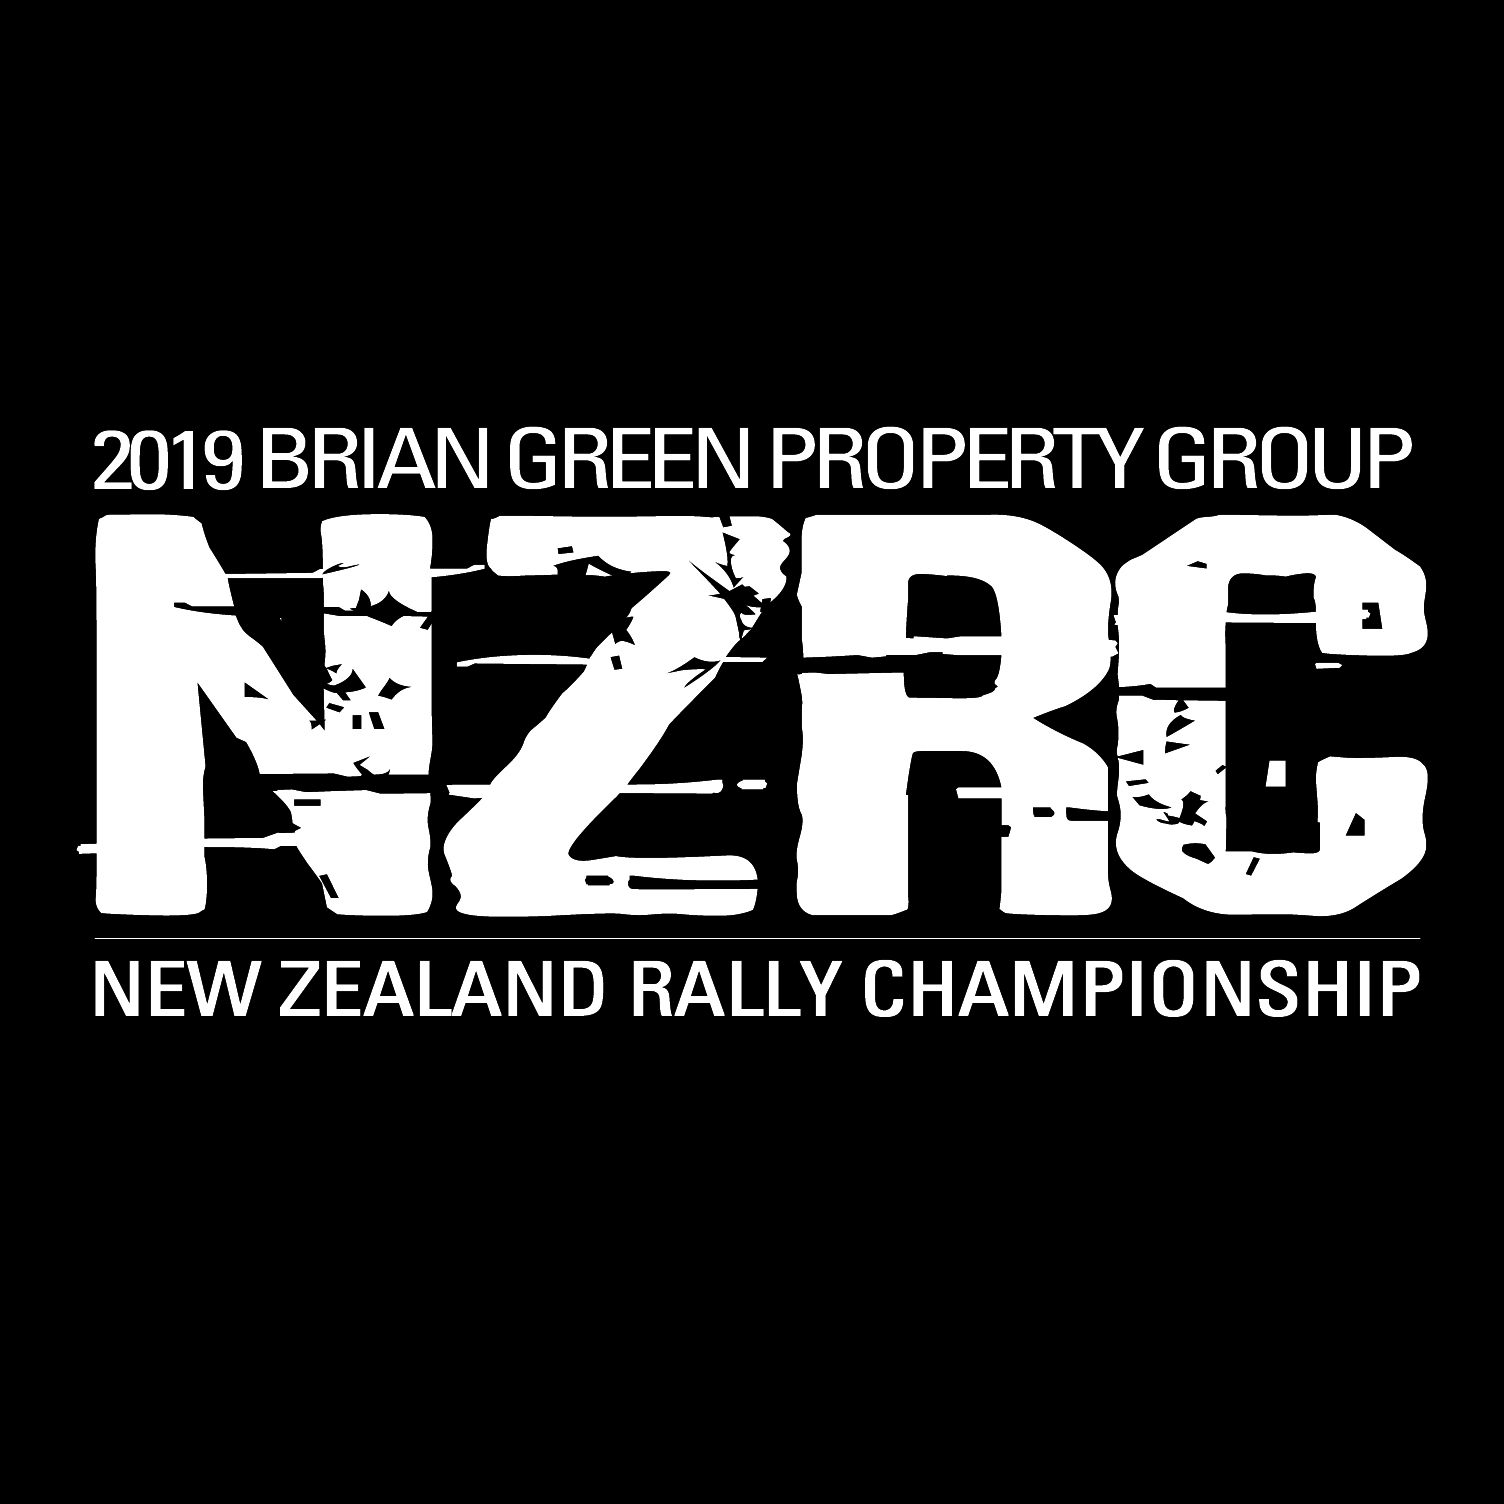 Jones to take tactical approach at South Canterbury | :: Brian Green Property Group New Zealand Rally Championship ::